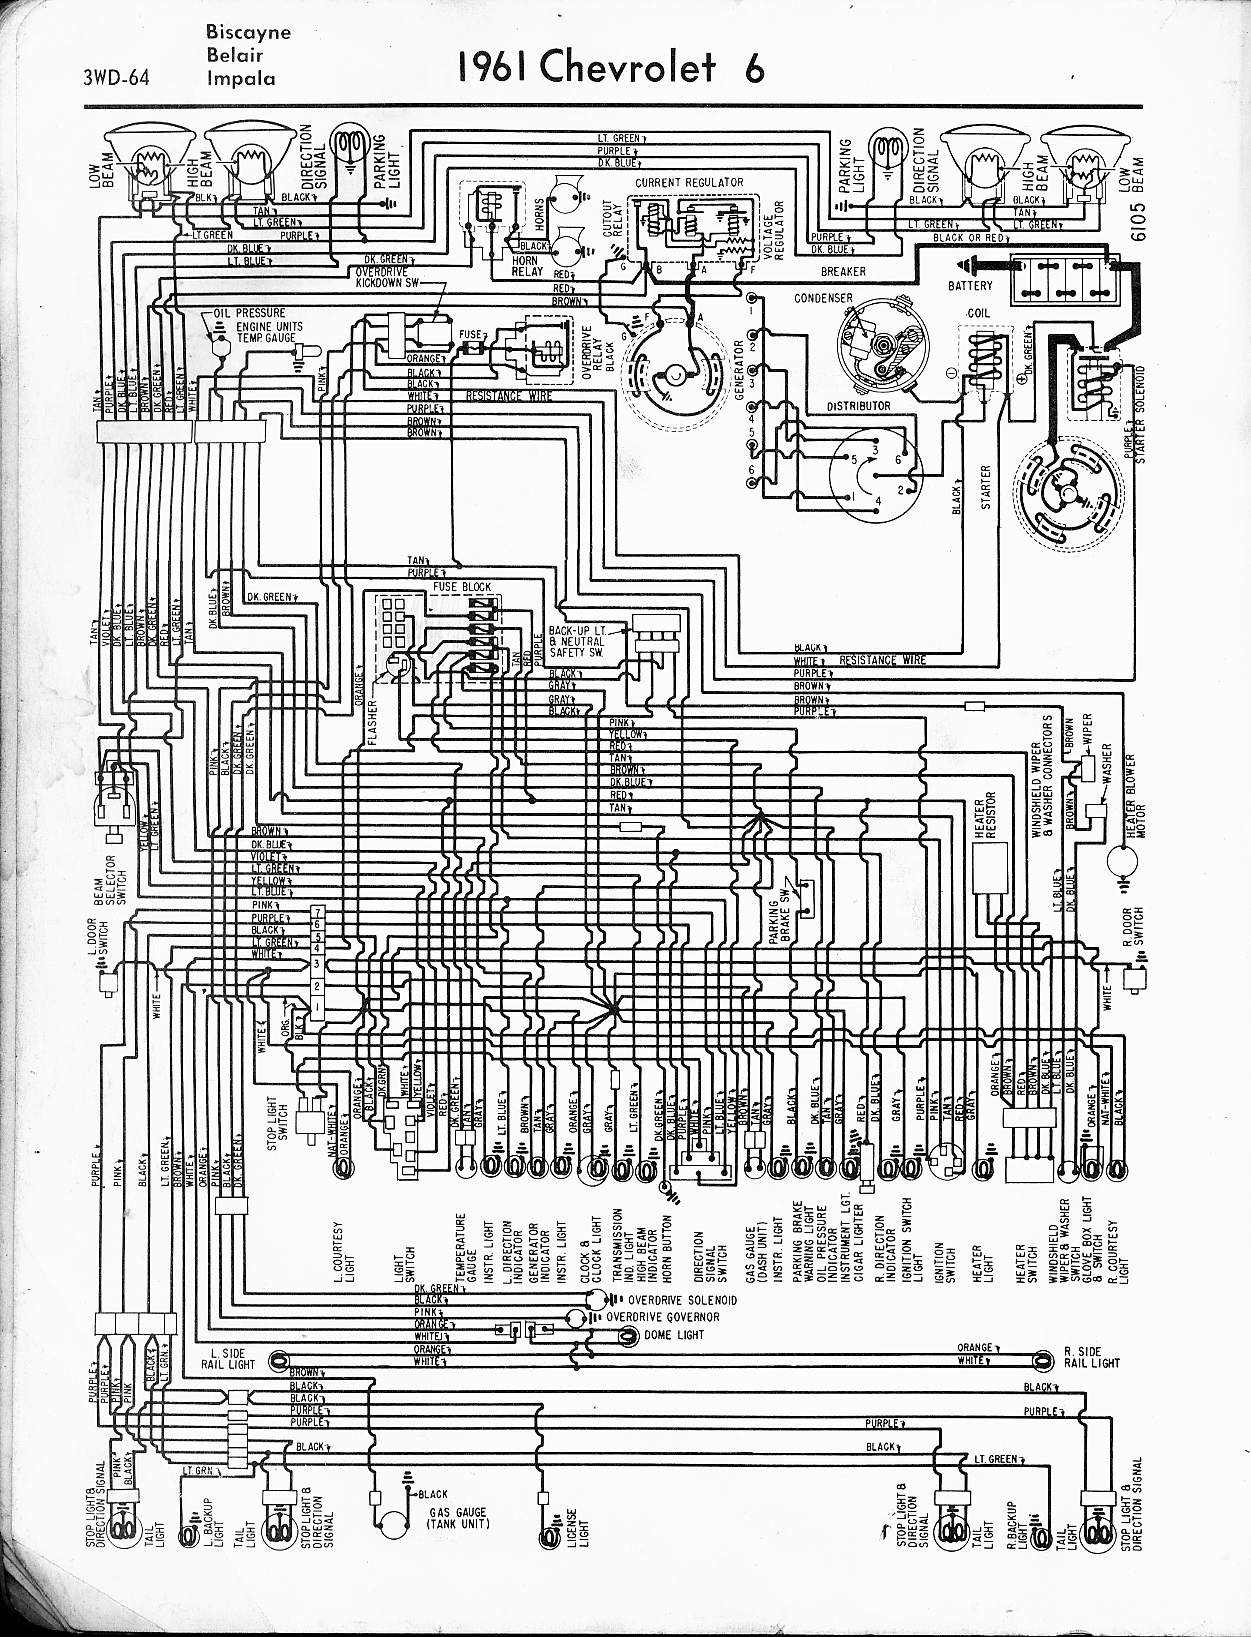 MWireChev61_3WD 064 57 65 chevy wiring diagrams 2001 corvette wiring diagram at reclaimingppi.co